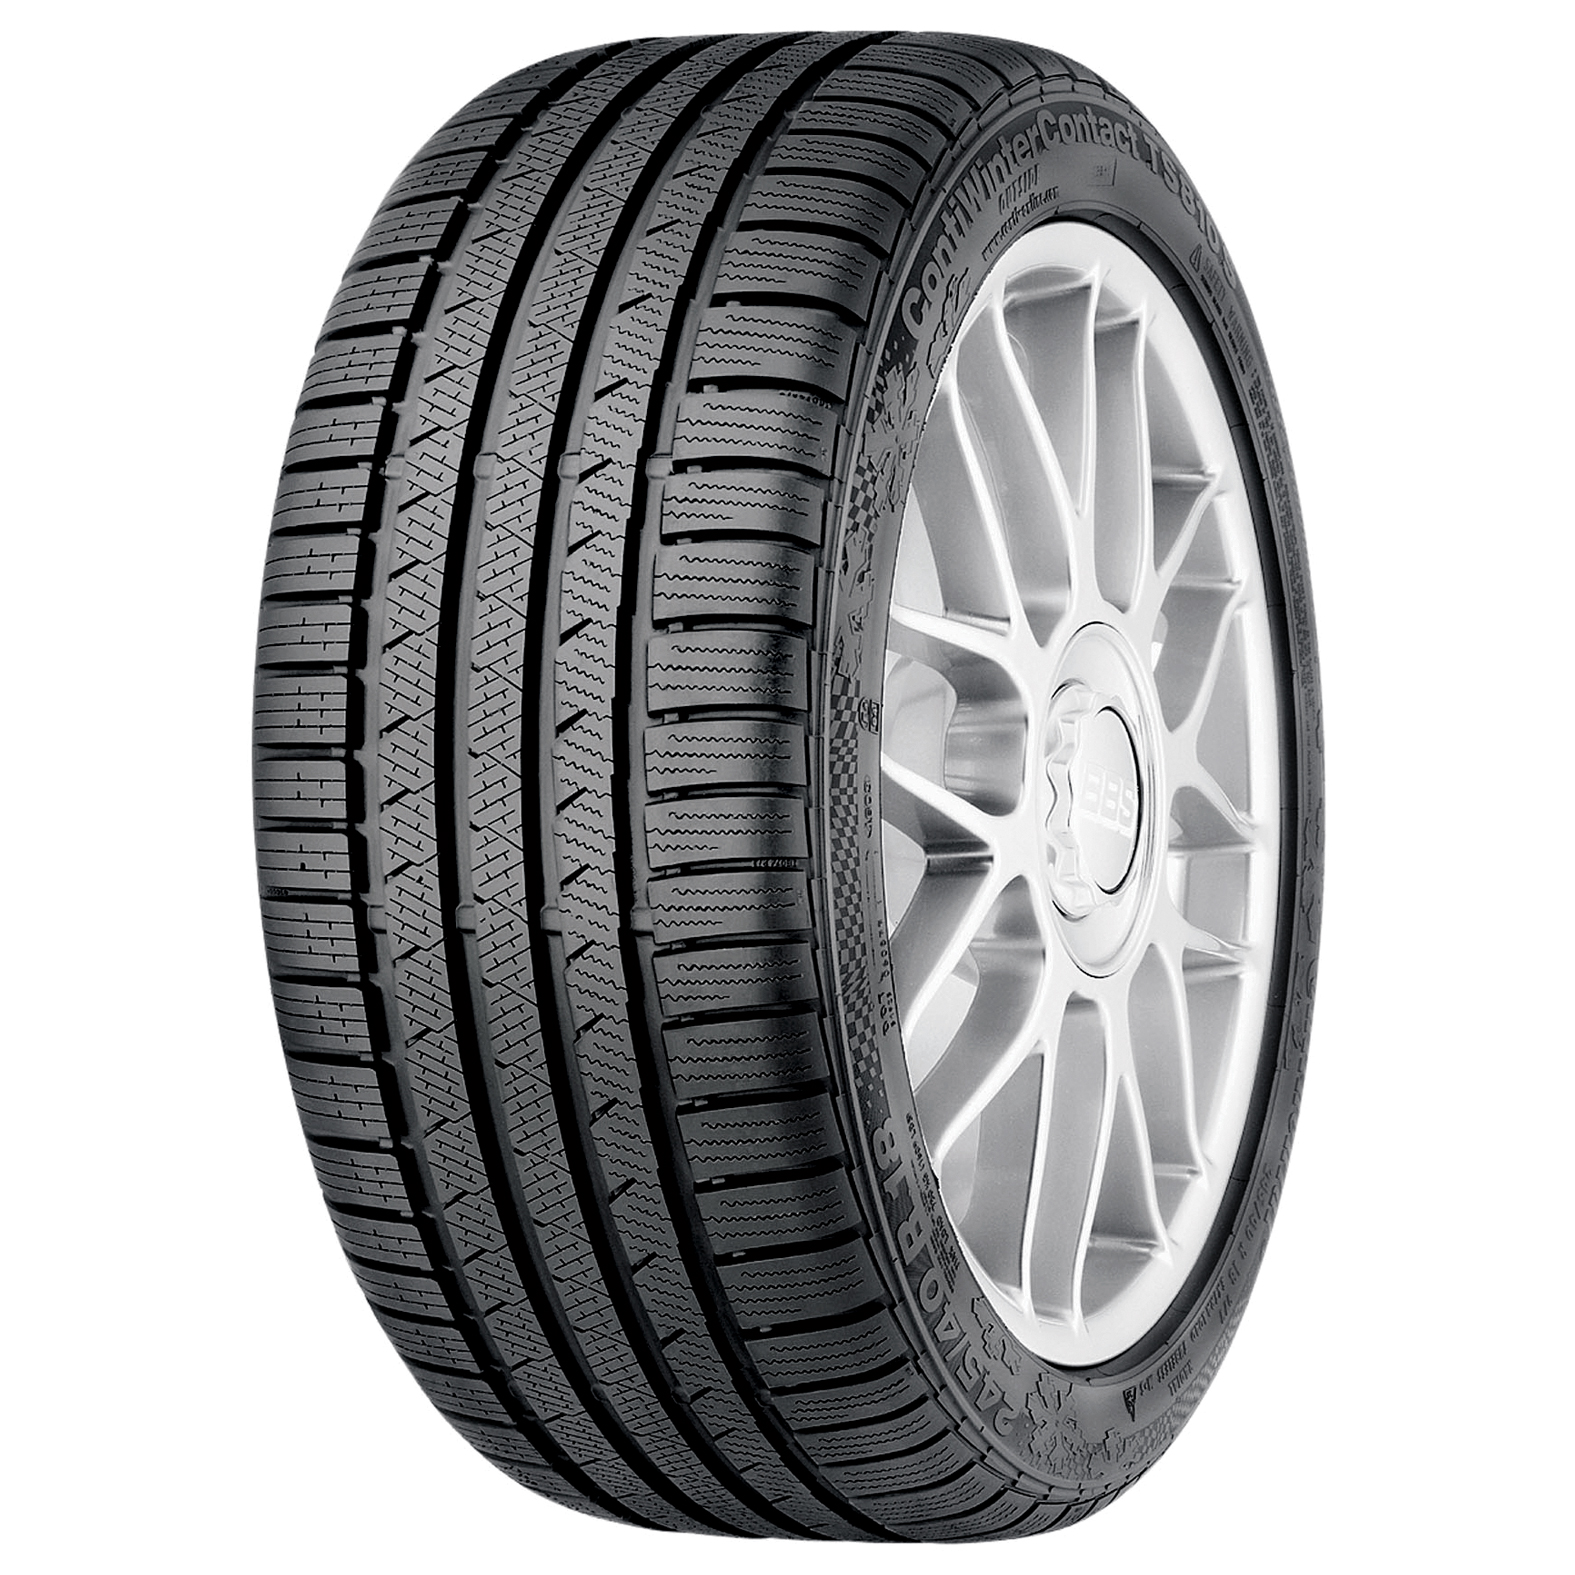 Continental CONTIWINTERCONTACT TS810 S tire - angle